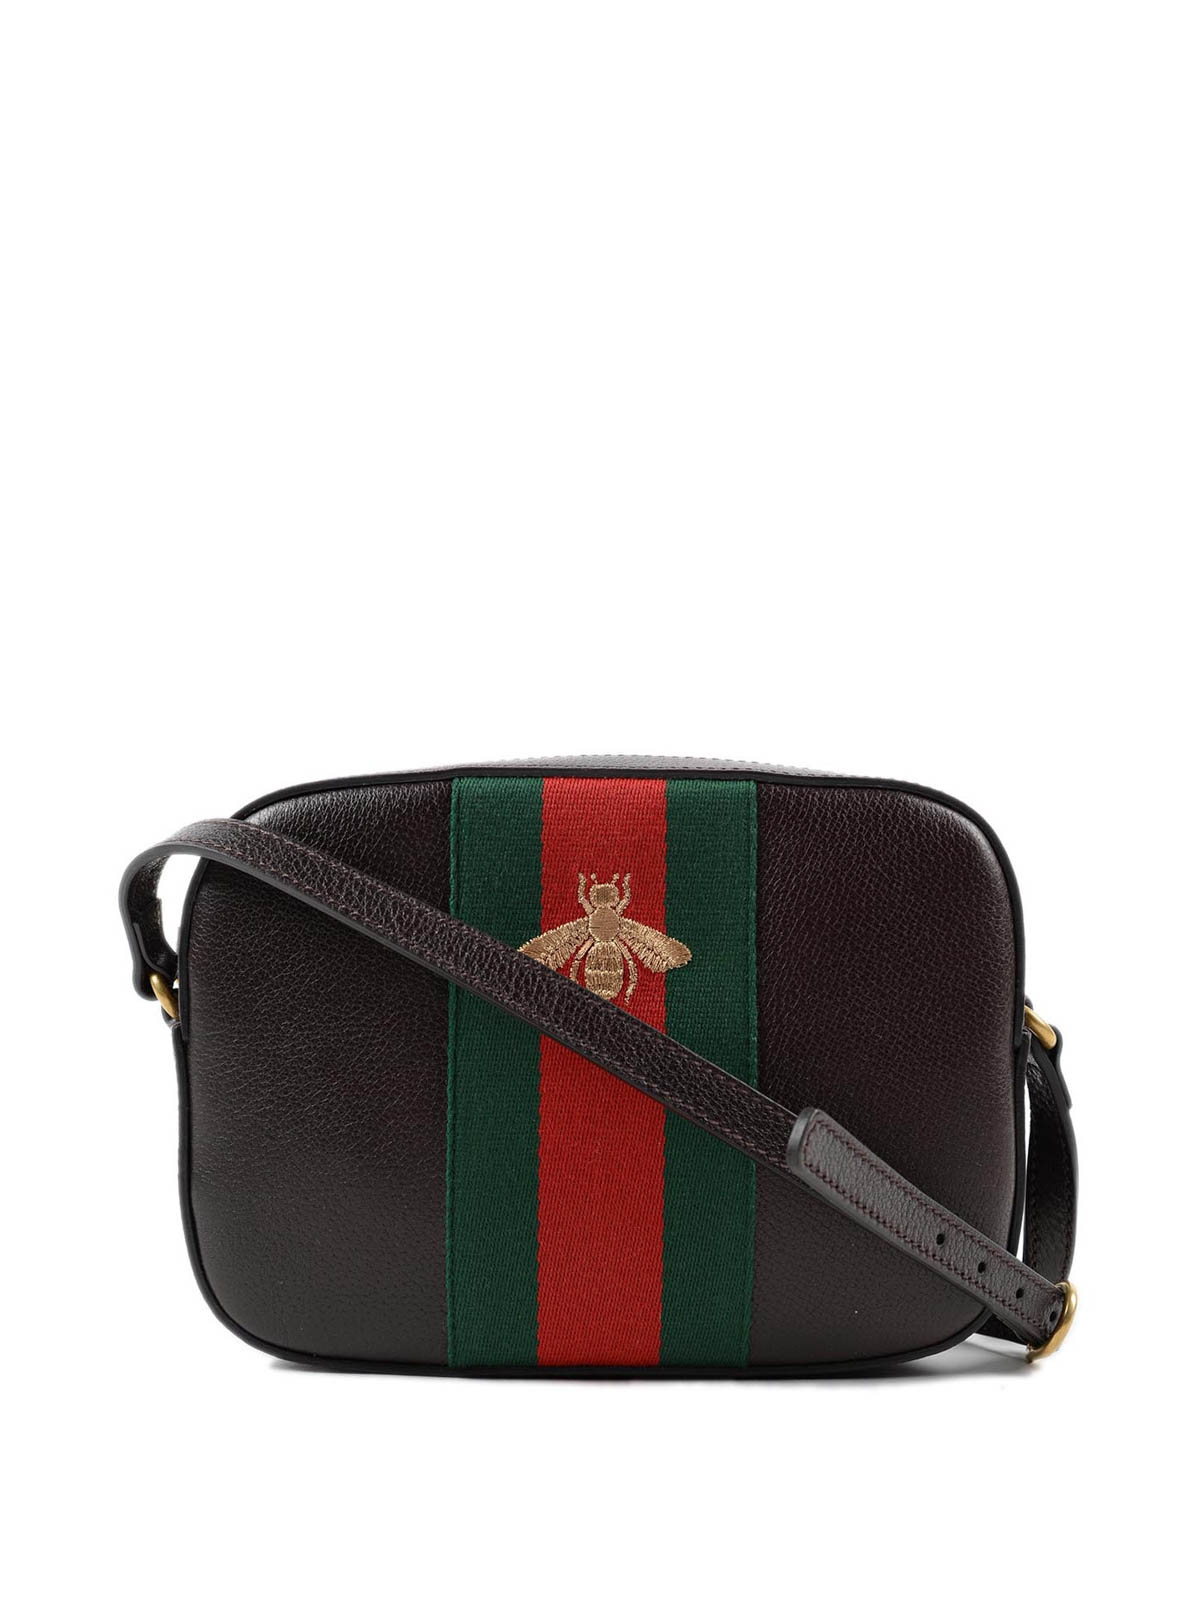 Bee embroidery leather mini bag by Gucci